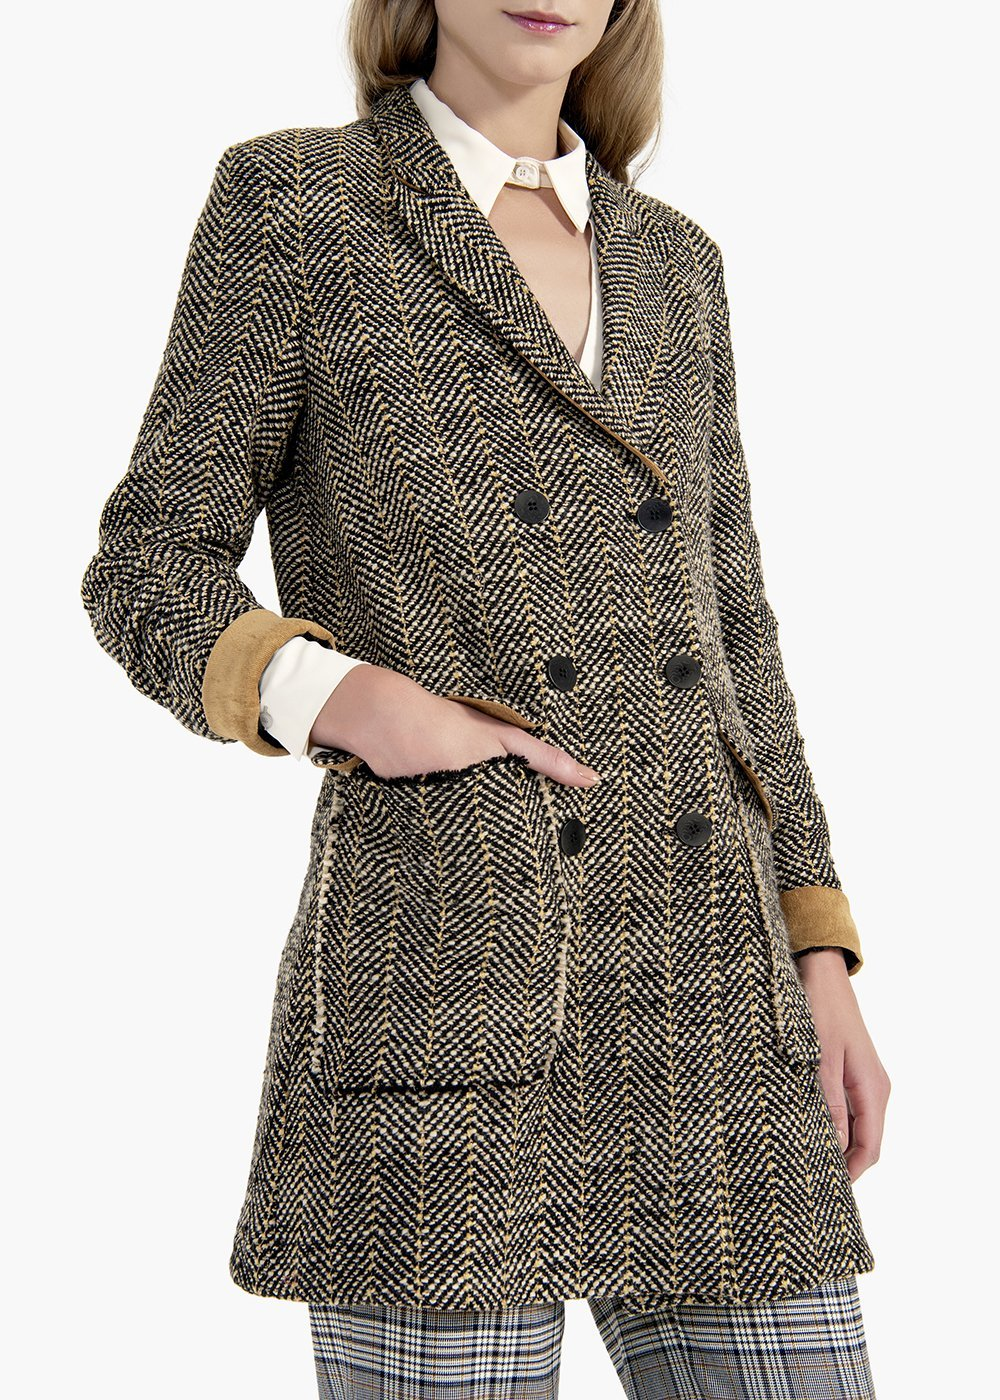 Conny double-breasted coat in herringbone fabric - Mostarda / Black Fantasia - Woman